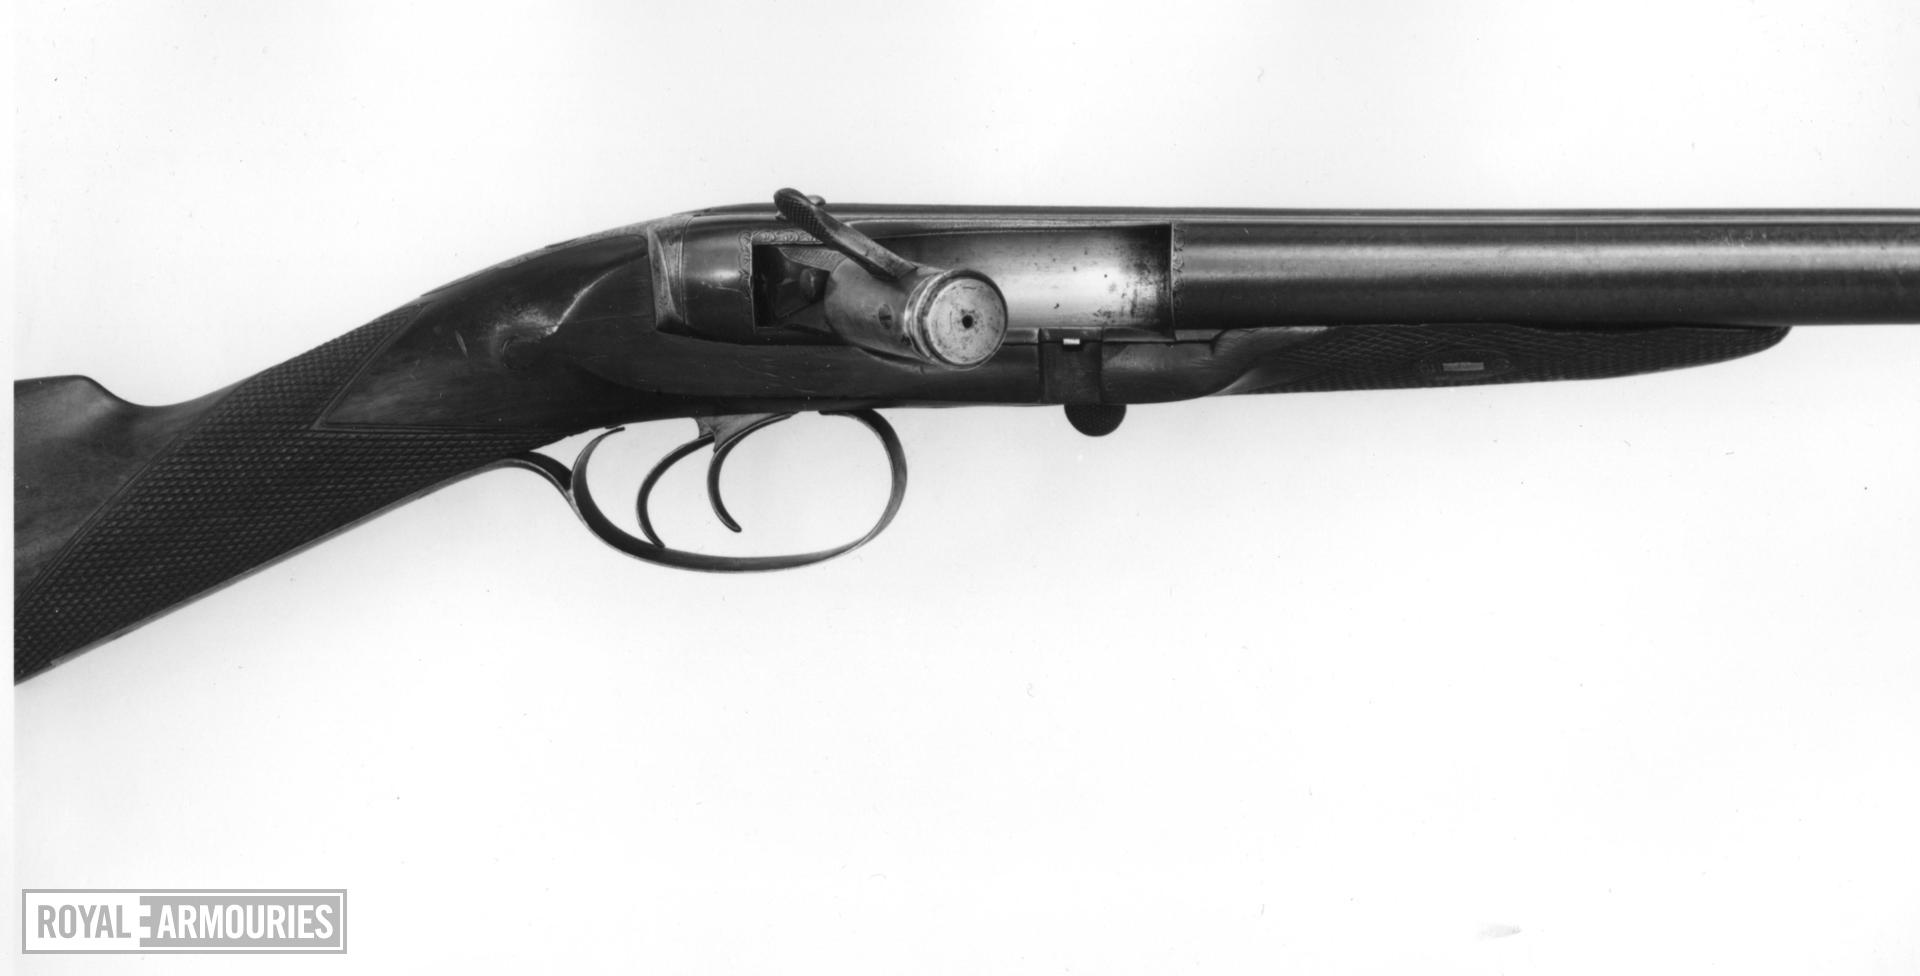 Needlefire breech-loading double-barrelled shotgun - Needham Patent